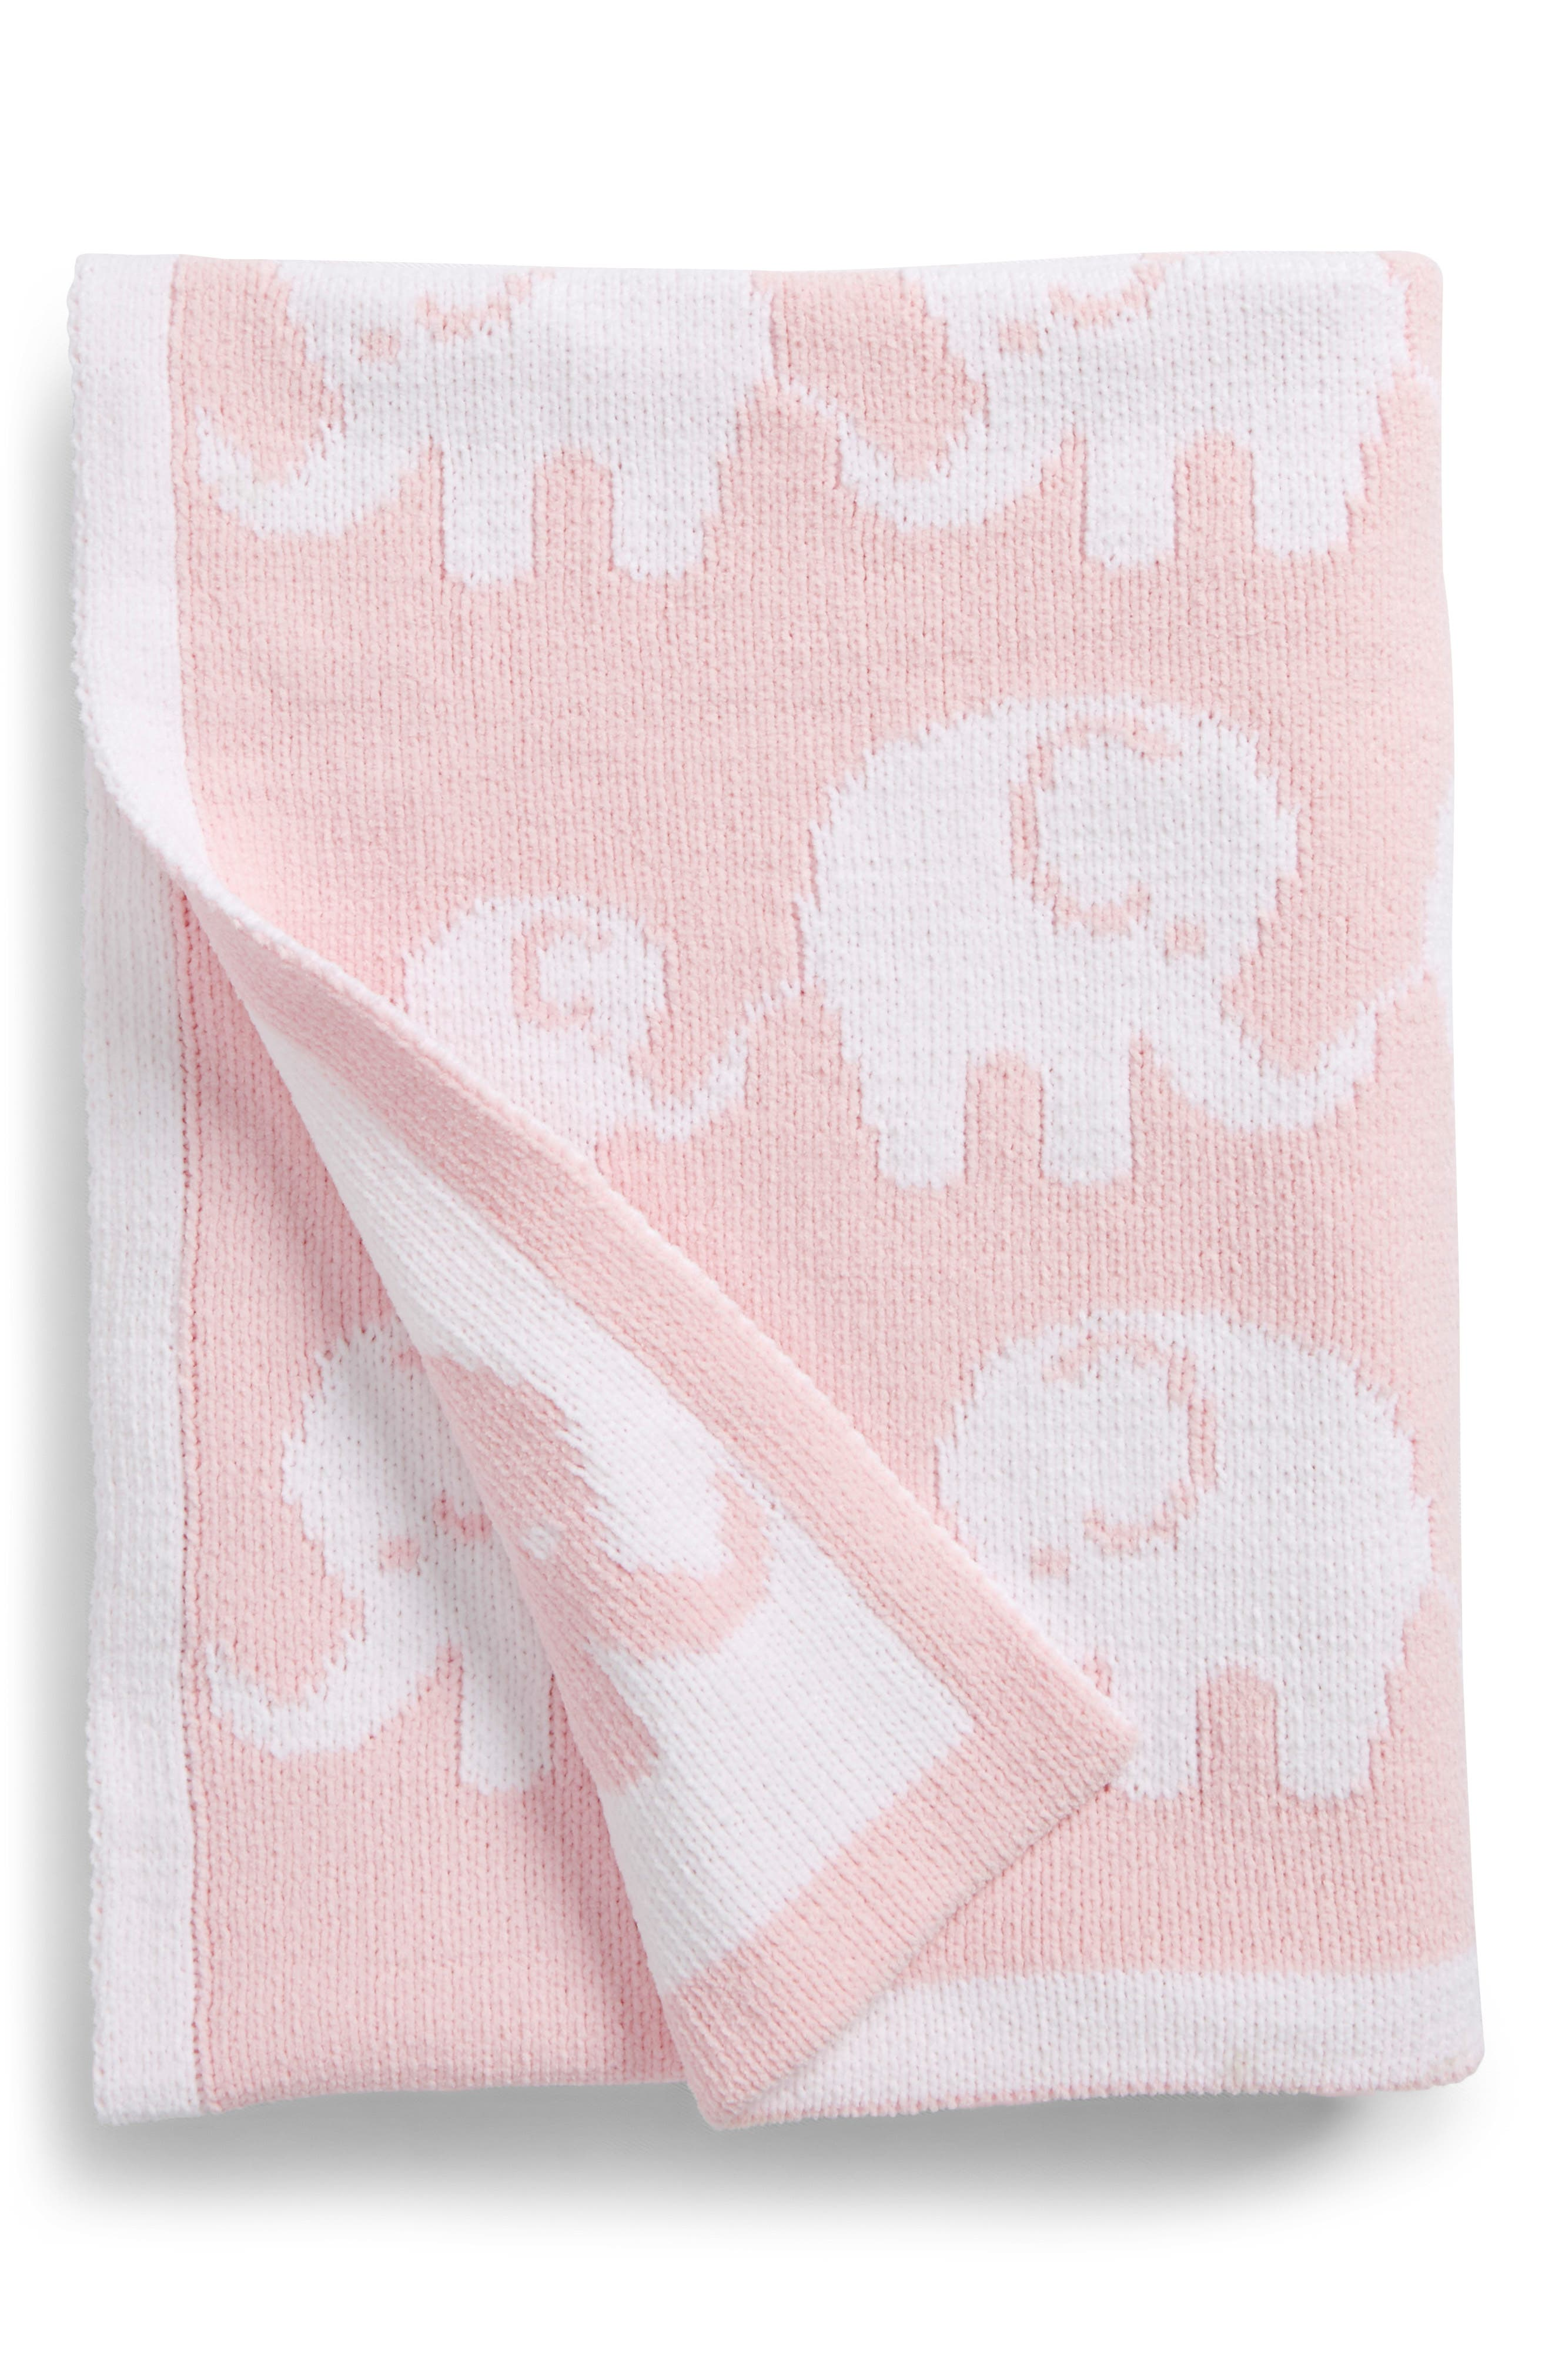 Chenille Blanket,                         Main,                         color, Pink Baby Elephants